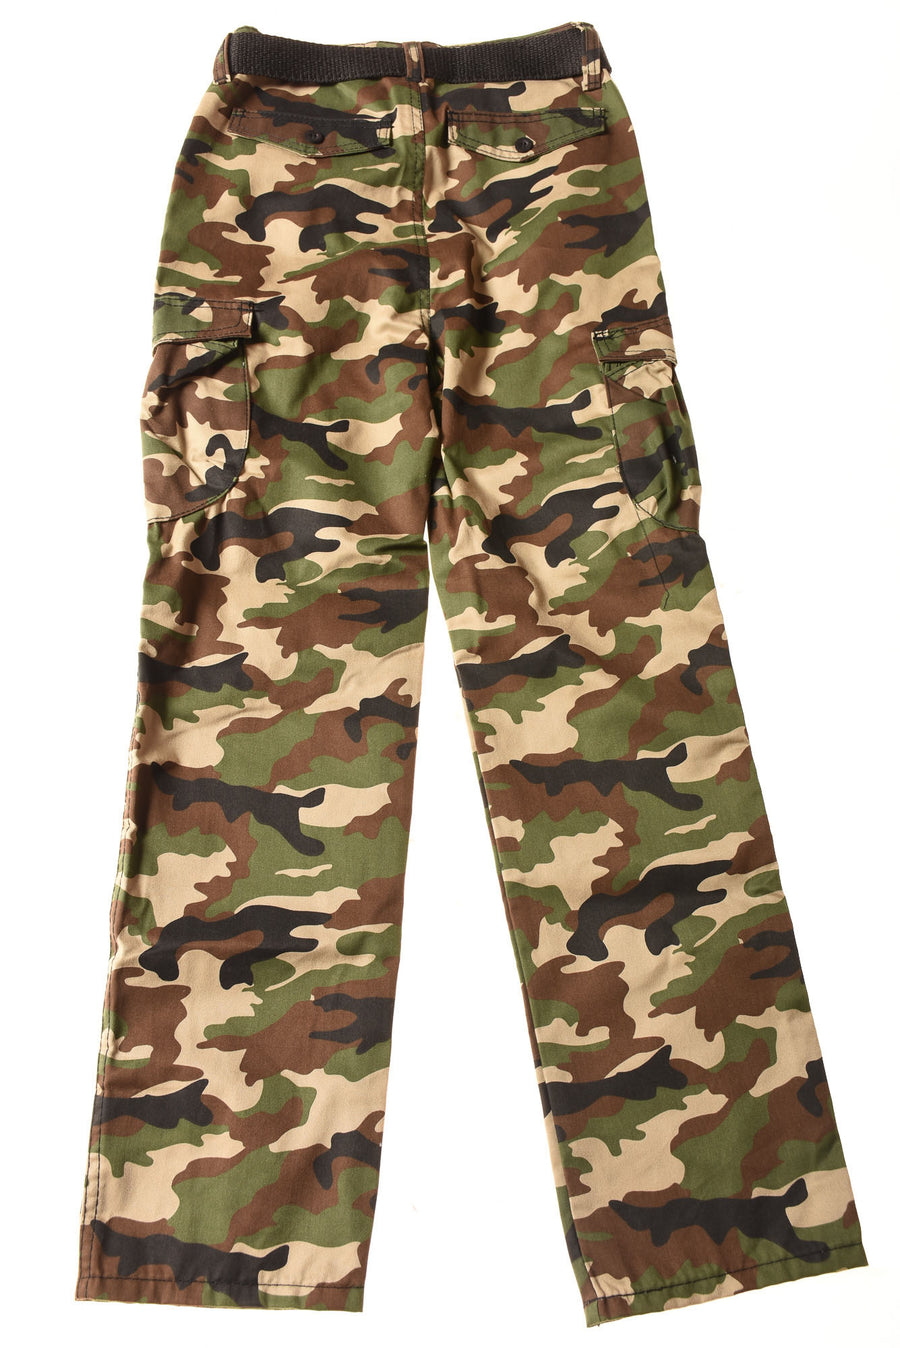 USED Vintage & Cargo Chams Boy's Slacks 18 Green / Camo Print